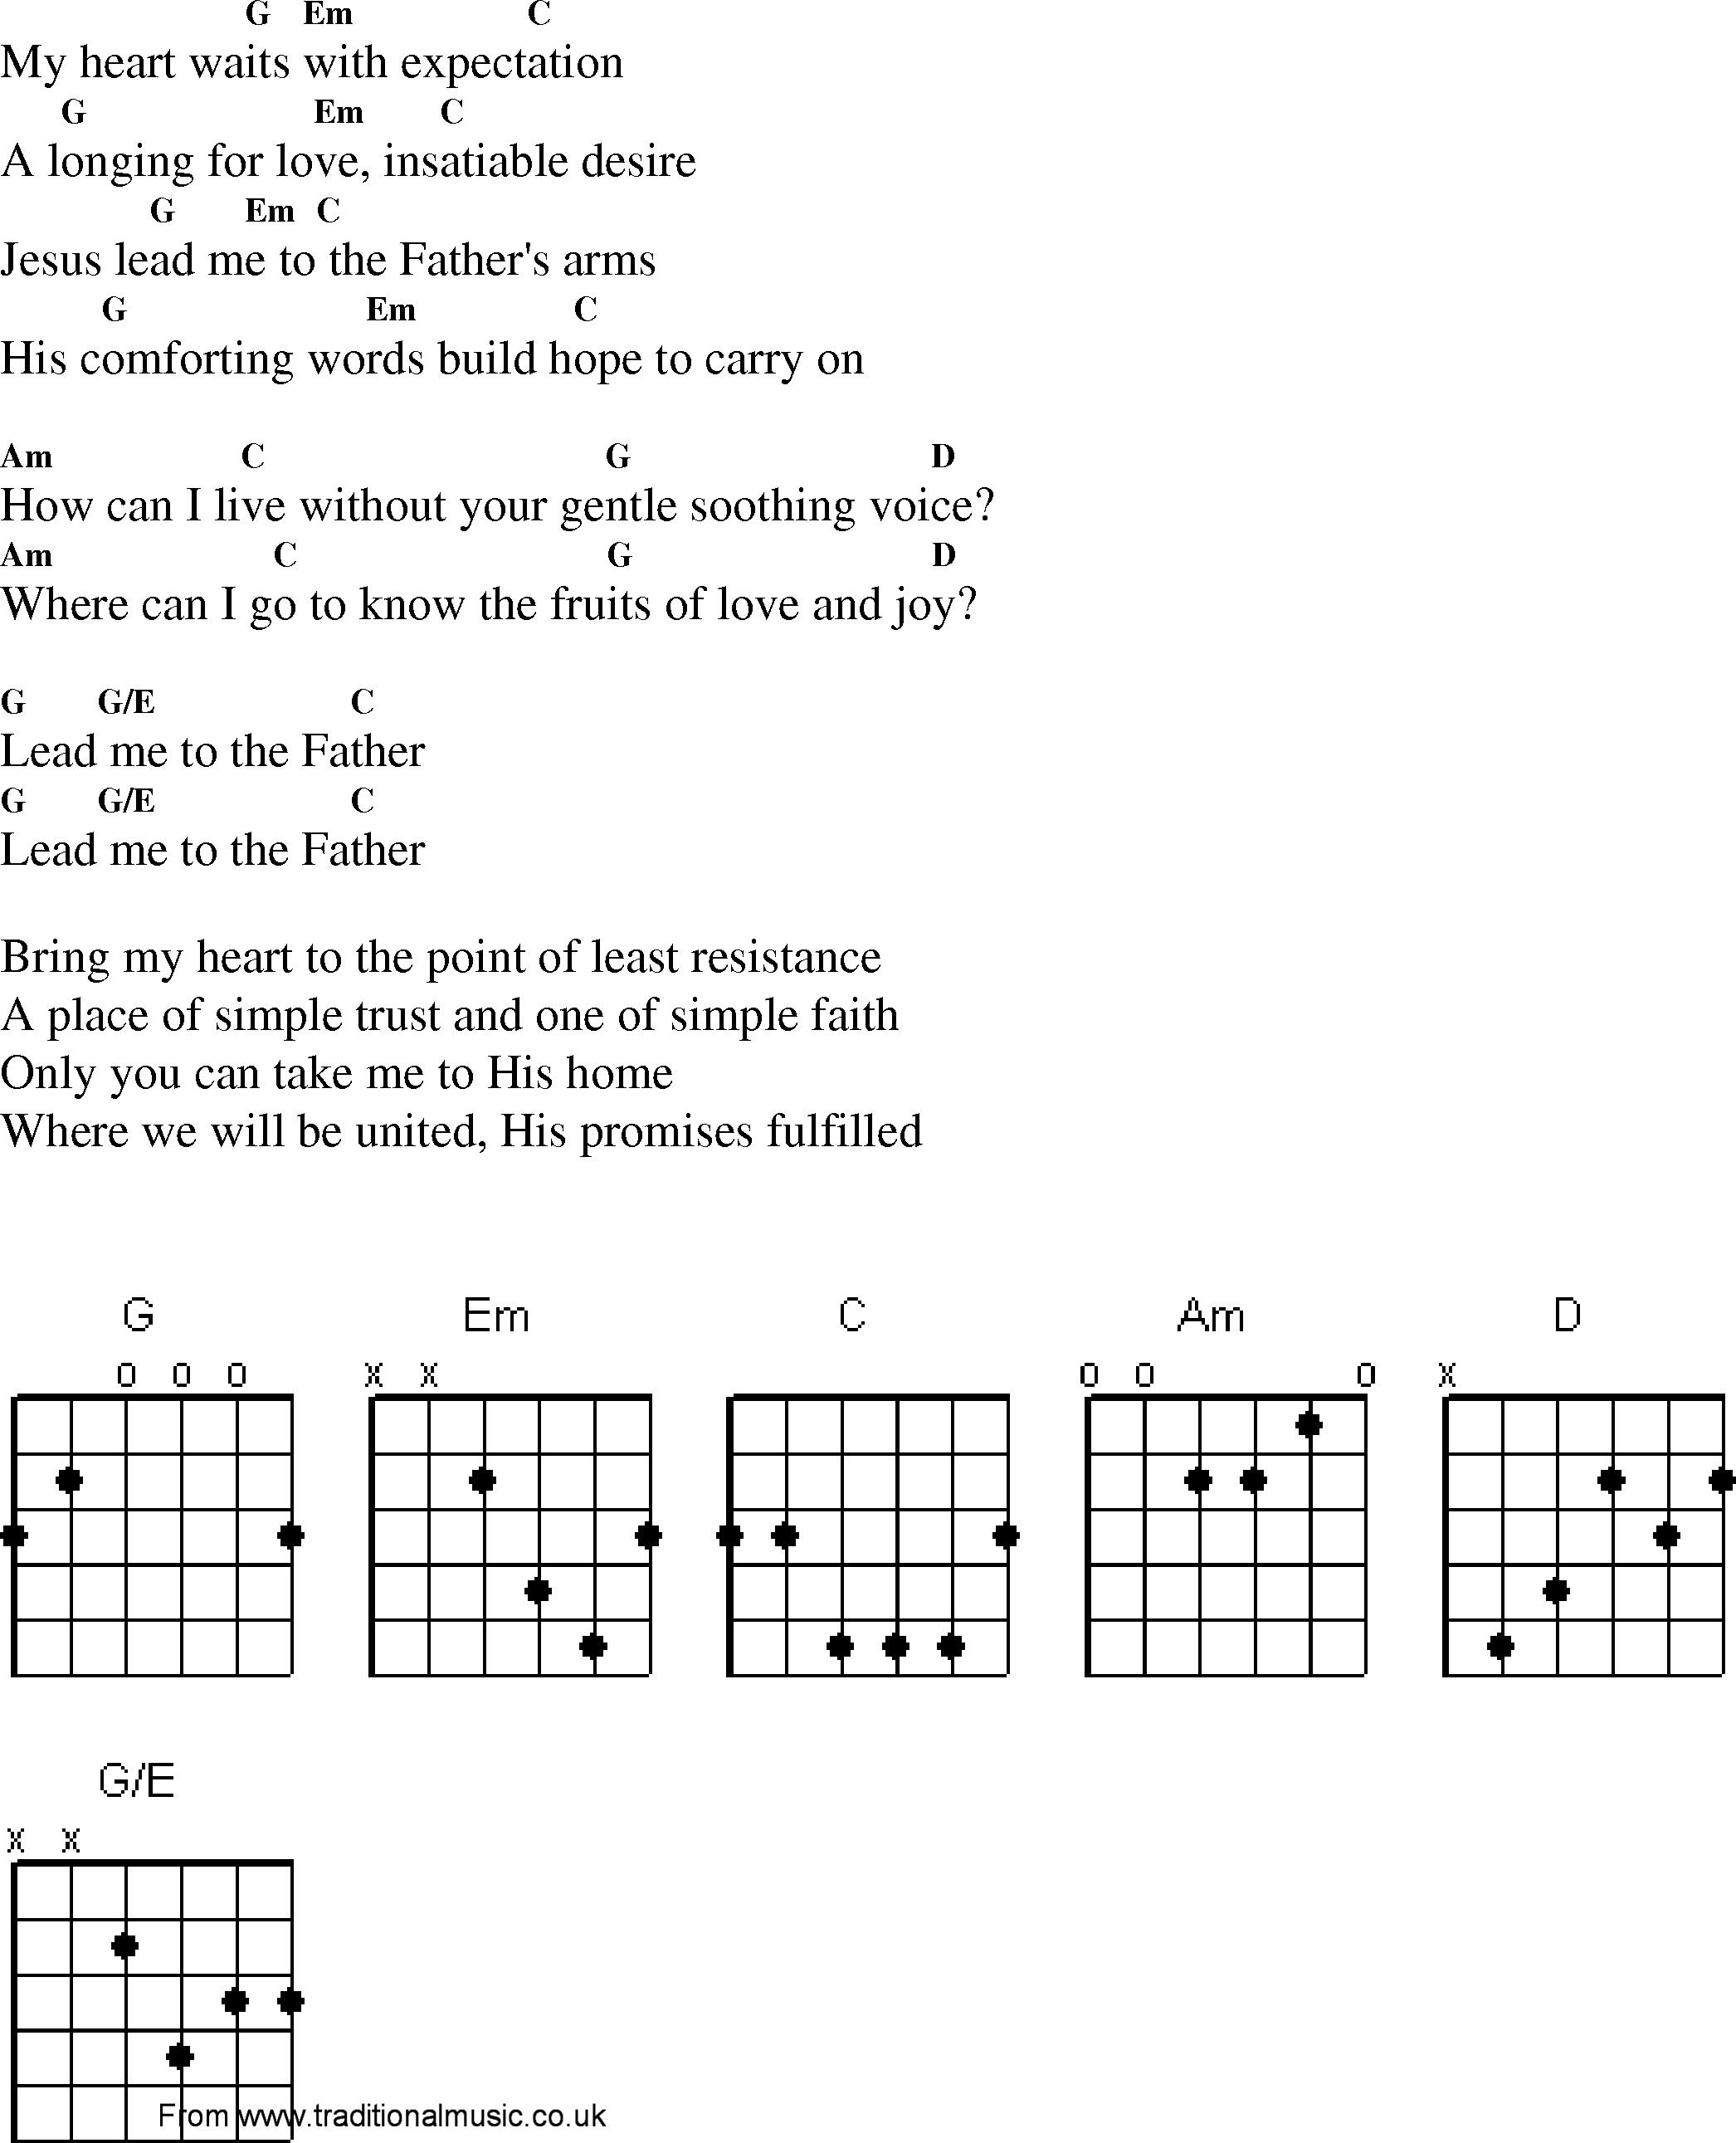 Christian Gospel Worship Song Lyrics With Chords Lead Me To The Father